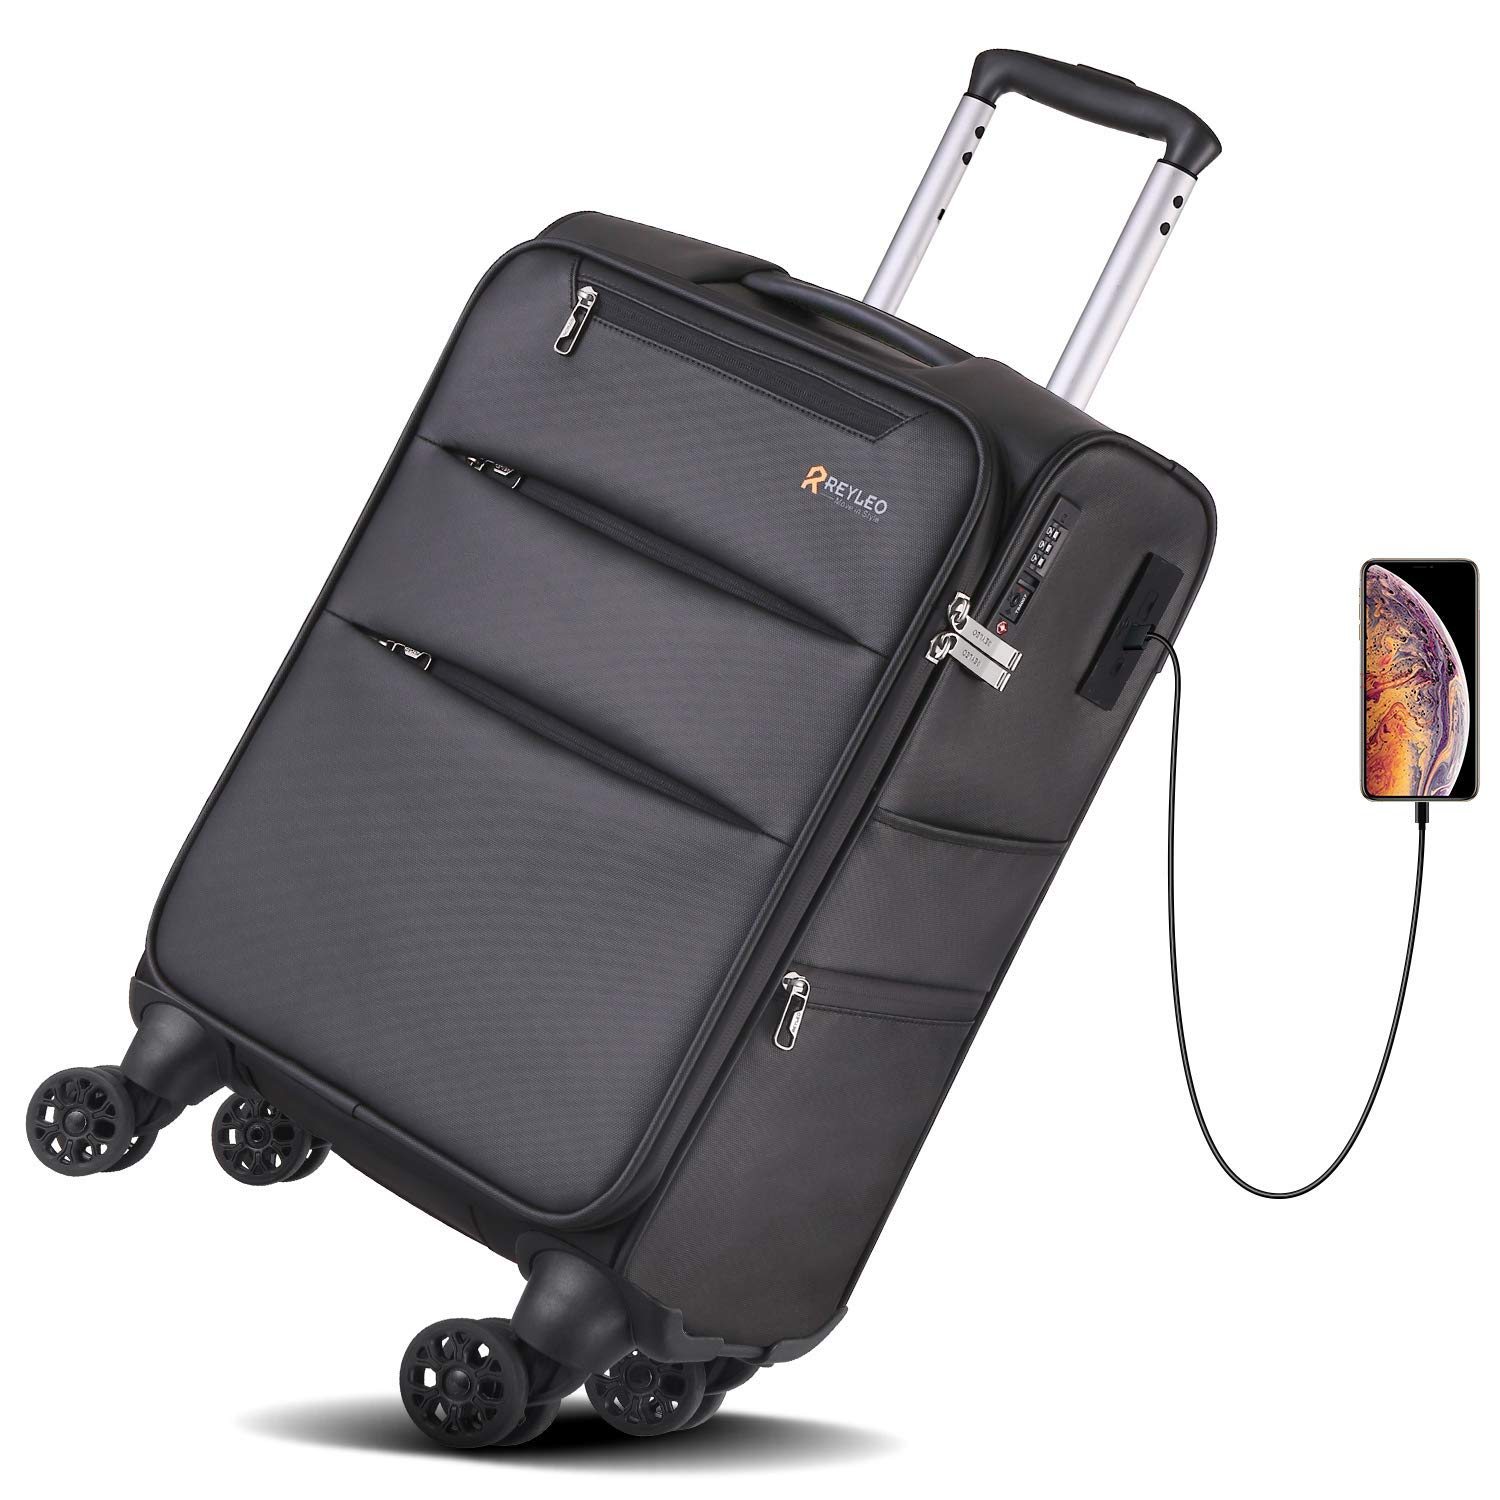 REYLEO 20 Inch Carry On Luggage Softside Spinner Luggage 8-Wheels Suitcase Built-in YiF TSA Lock with USB Charging Port